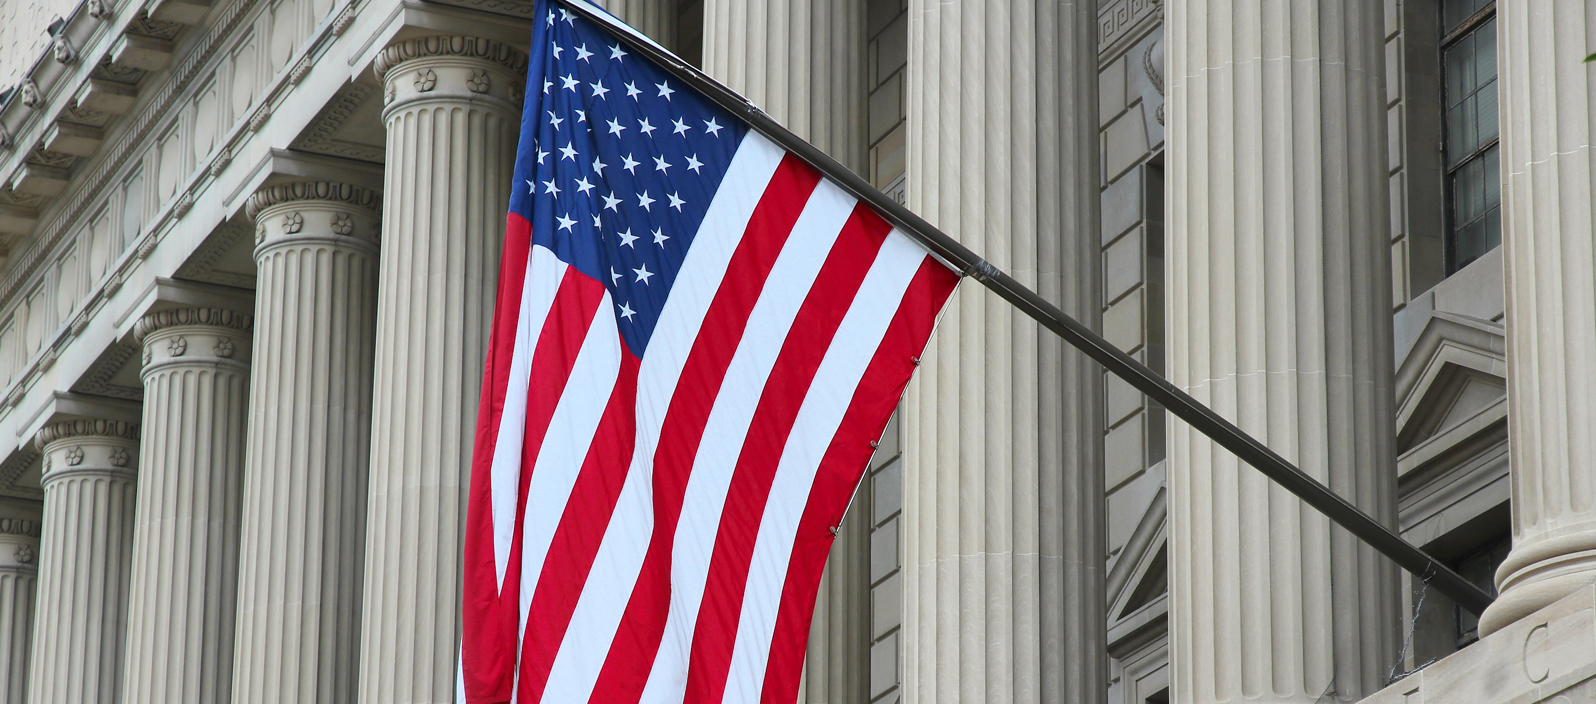 American flag on a Government building